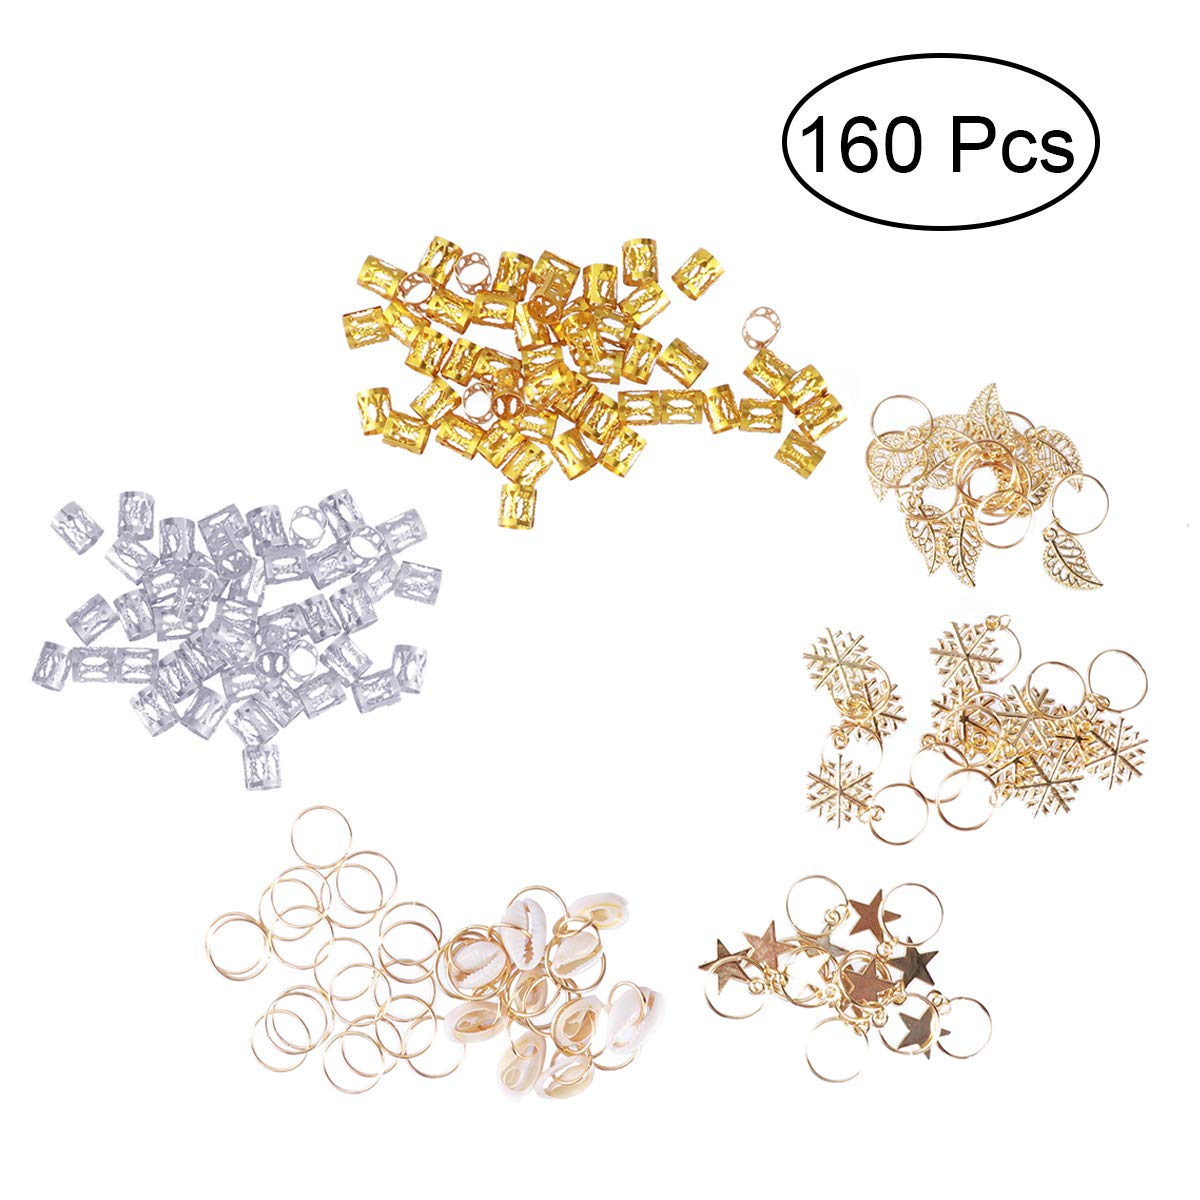 Frcolor 160Pcs Hair Charms Hair Jewelry Rings Decorations Snowflake Feather Star Pattern Hair Braid Rings Hair Beads for Dreadlocks